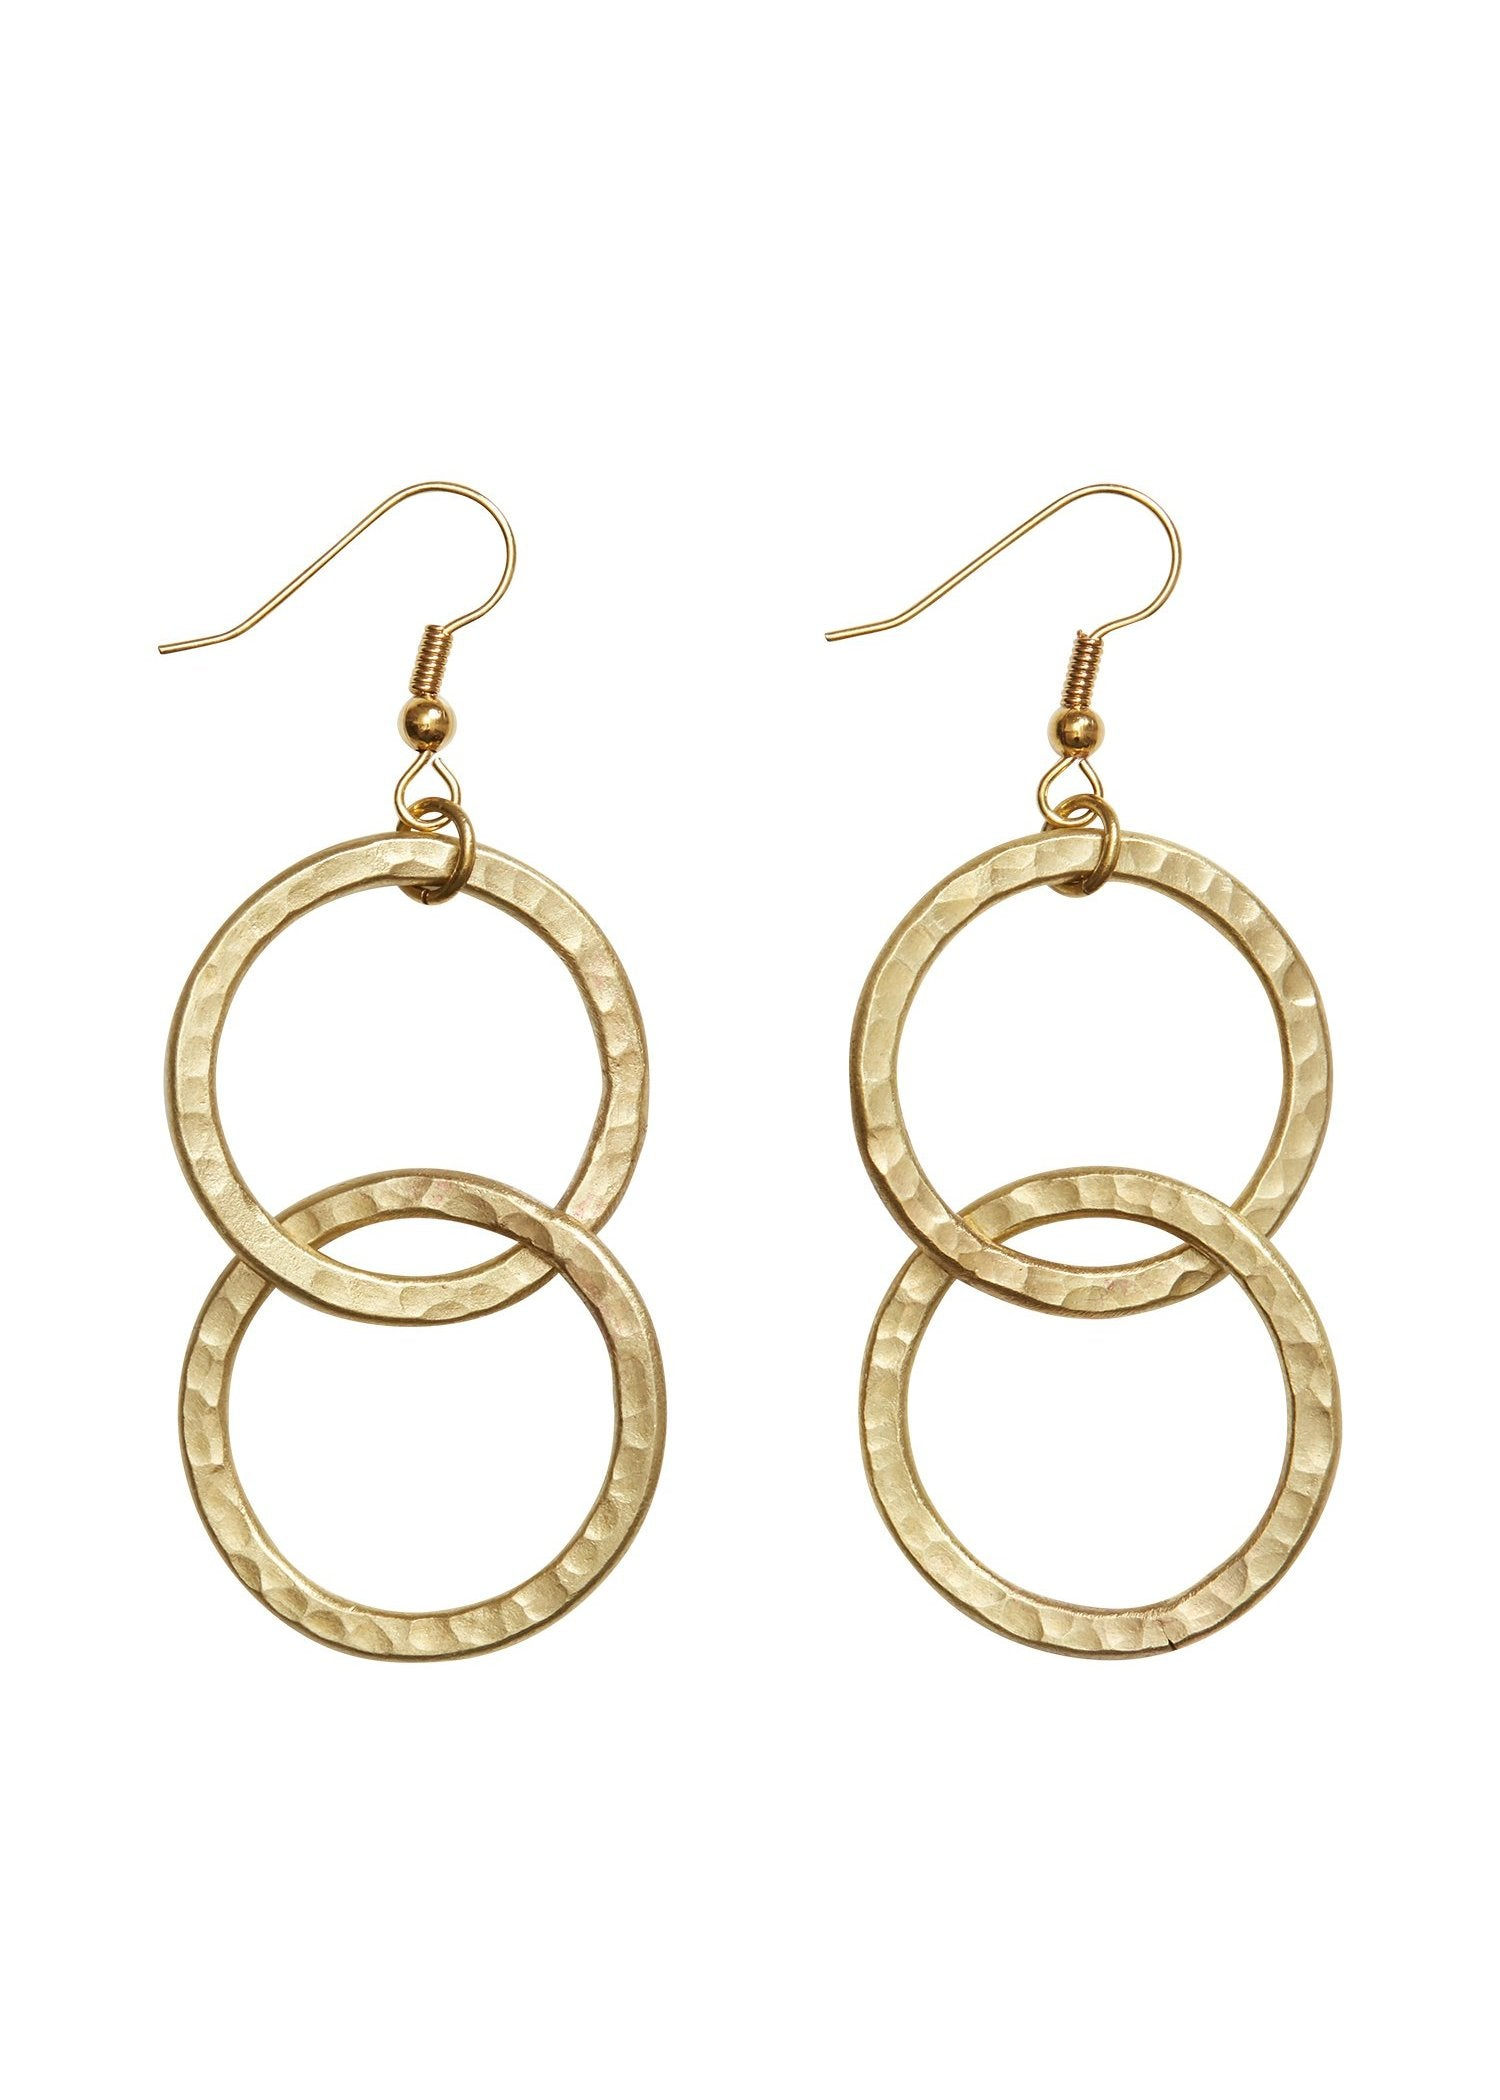 Double Circle Earrings in Brass-Earrings-Sancho's Dress